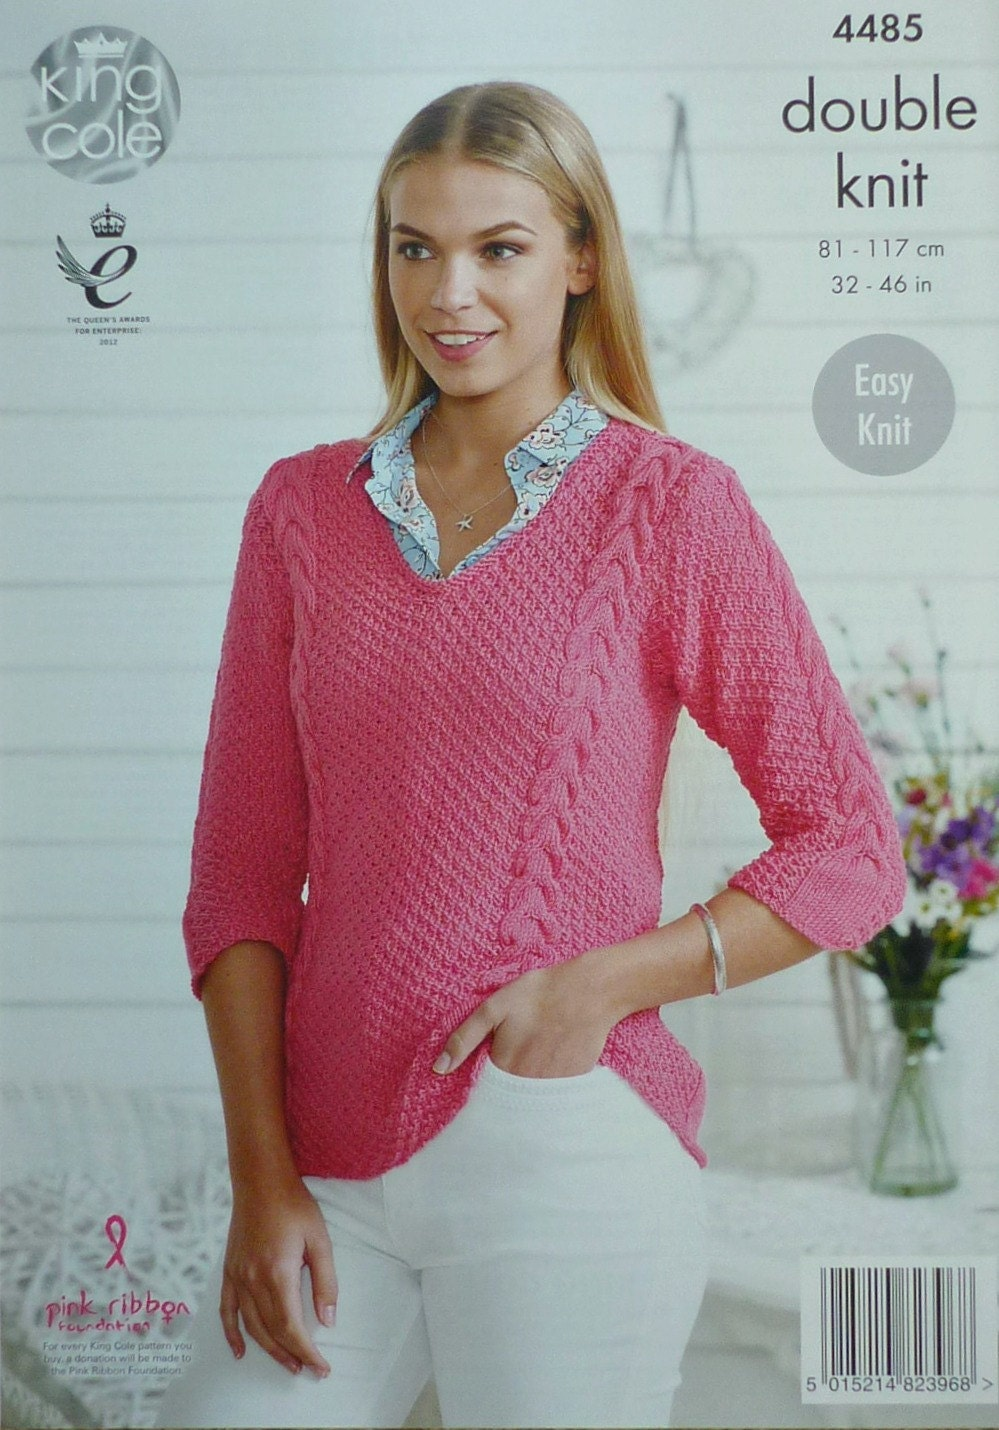 Moss Stitch Jumper Knitting Pattern : Womens Knitting Pattern K4485 Ladies Easy Knit 3/4 Sleeve V-Neck Cable & ...